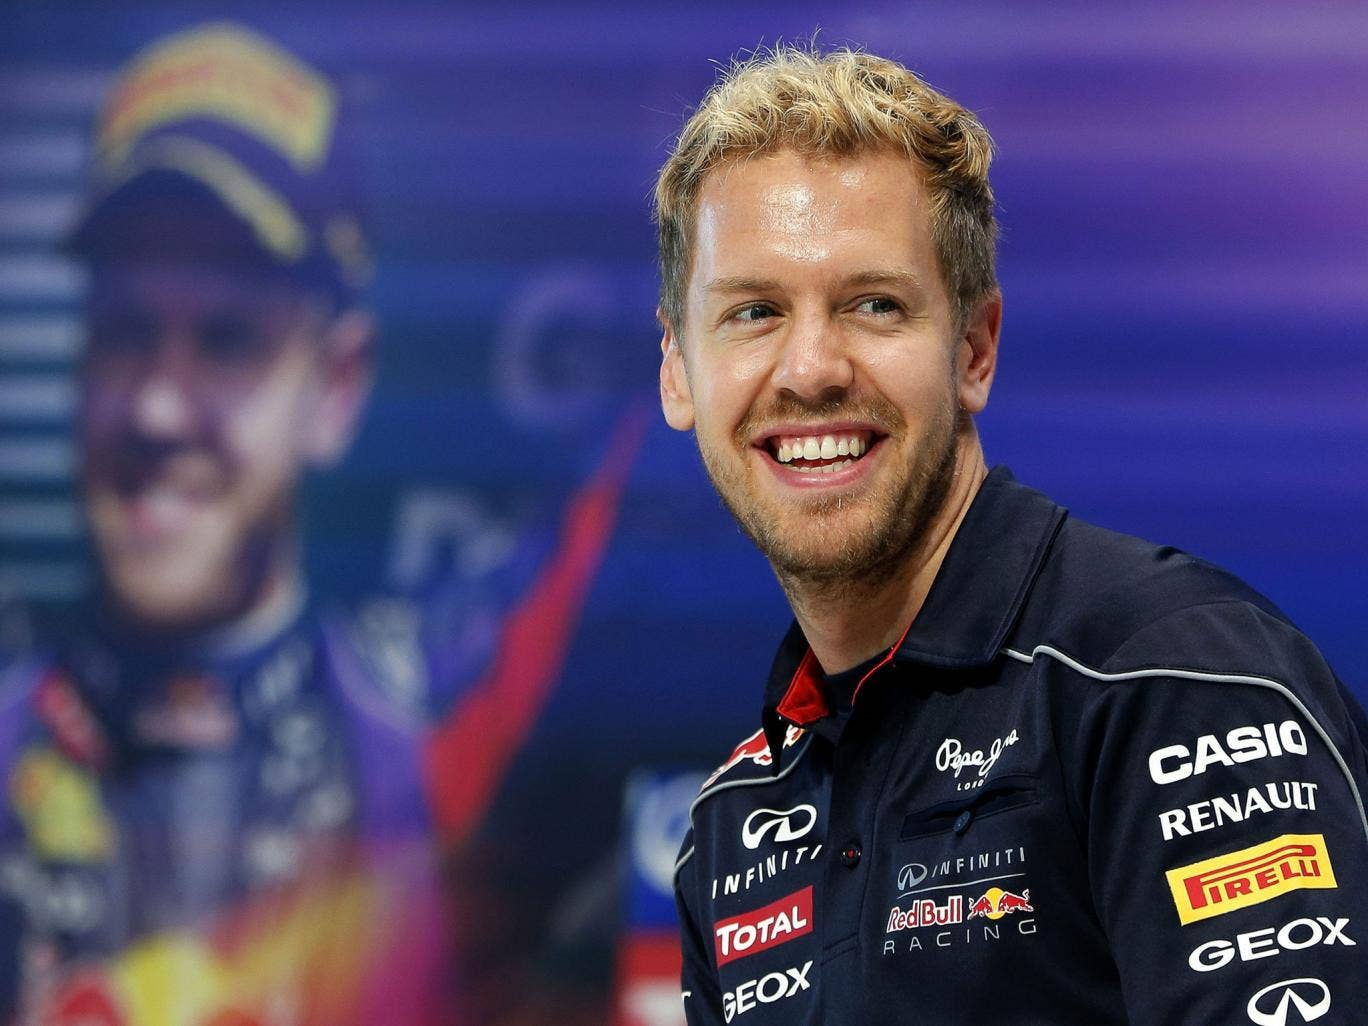 The FIA hopes the changes will increase the competition faced by the champion Sebastian Vettel